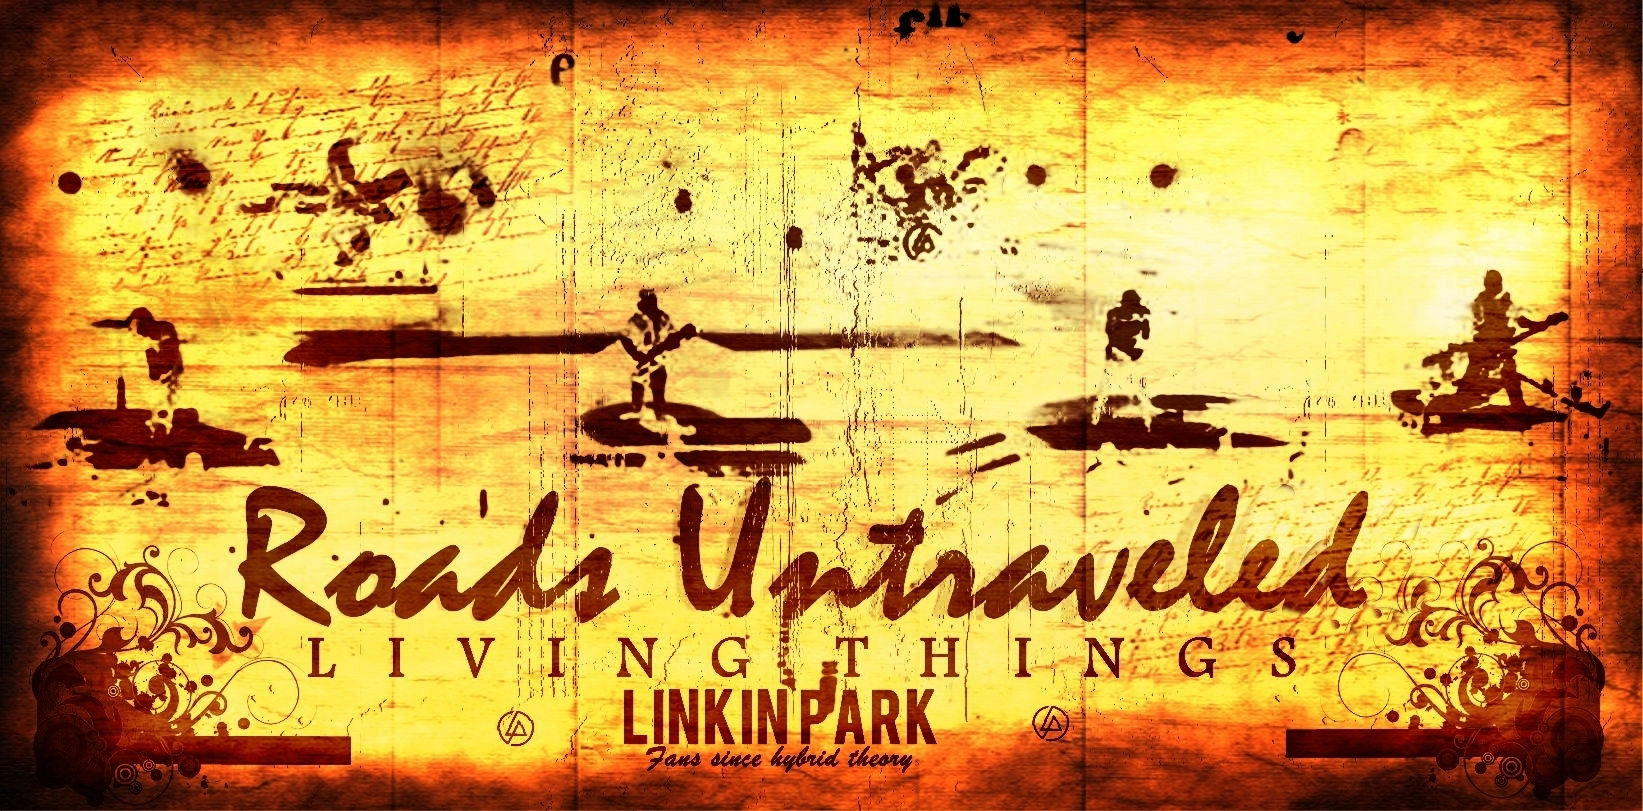 LINKIN PARK LYRICS,LINKIN PARK, LYRICS,LINKIN PARK song LYRICS,song LYRICS,Roads Untraveled lyrics,Roads Untraveled LINKIN PARK LYRICS,LINKIN PARK Roads Untraveled LYRICS,Weep not for roads untraveled,